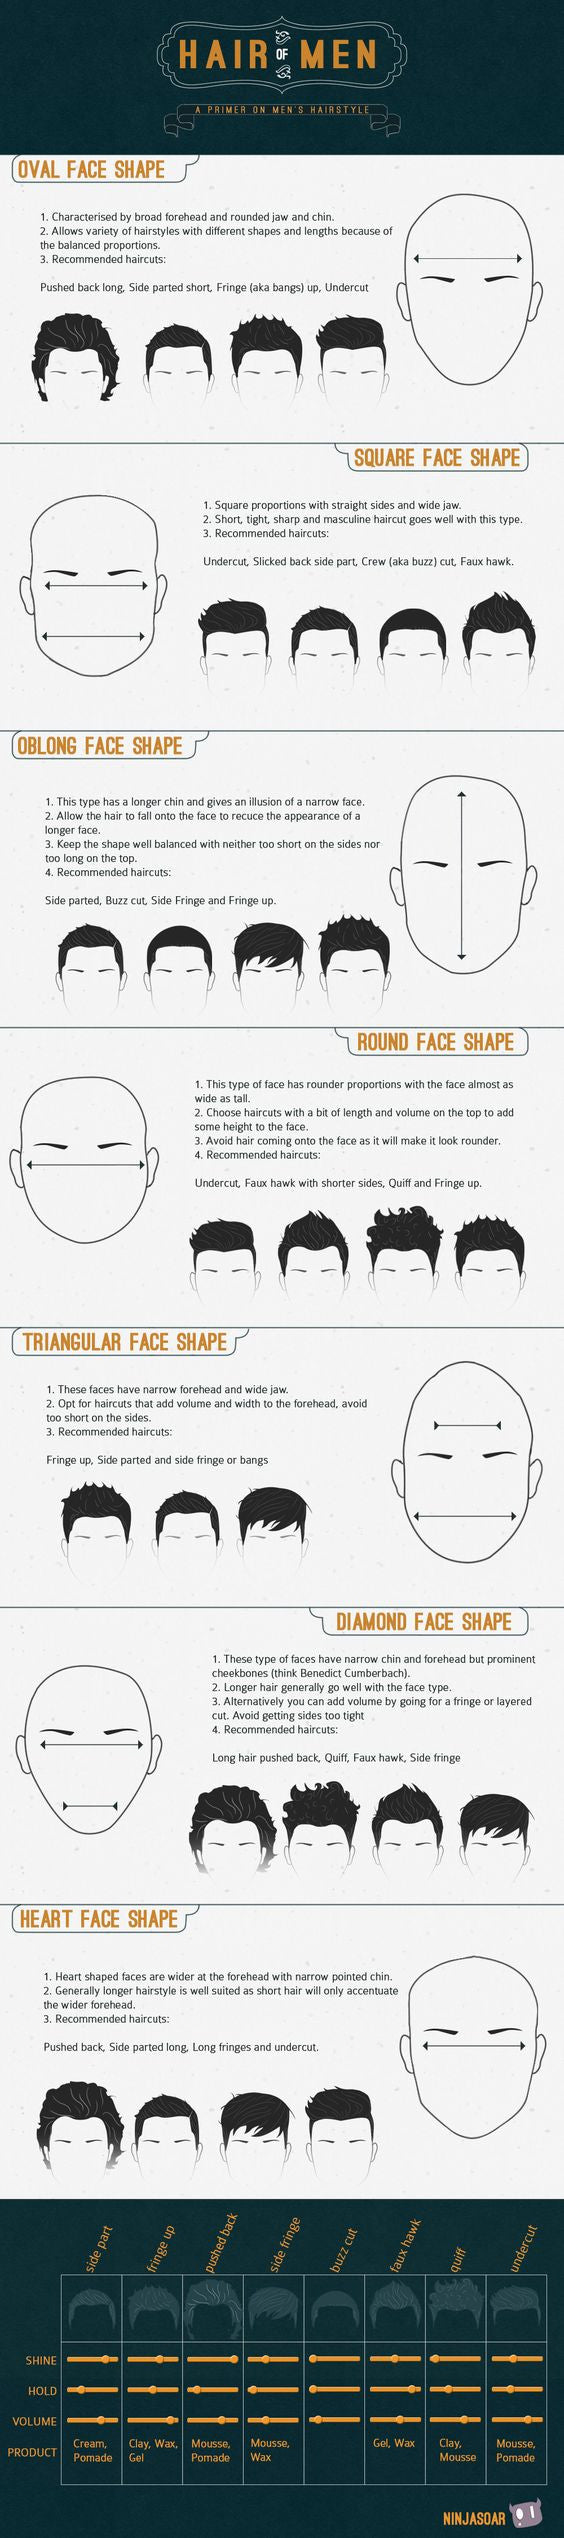 Infographic on haircuts optimal for head shapes